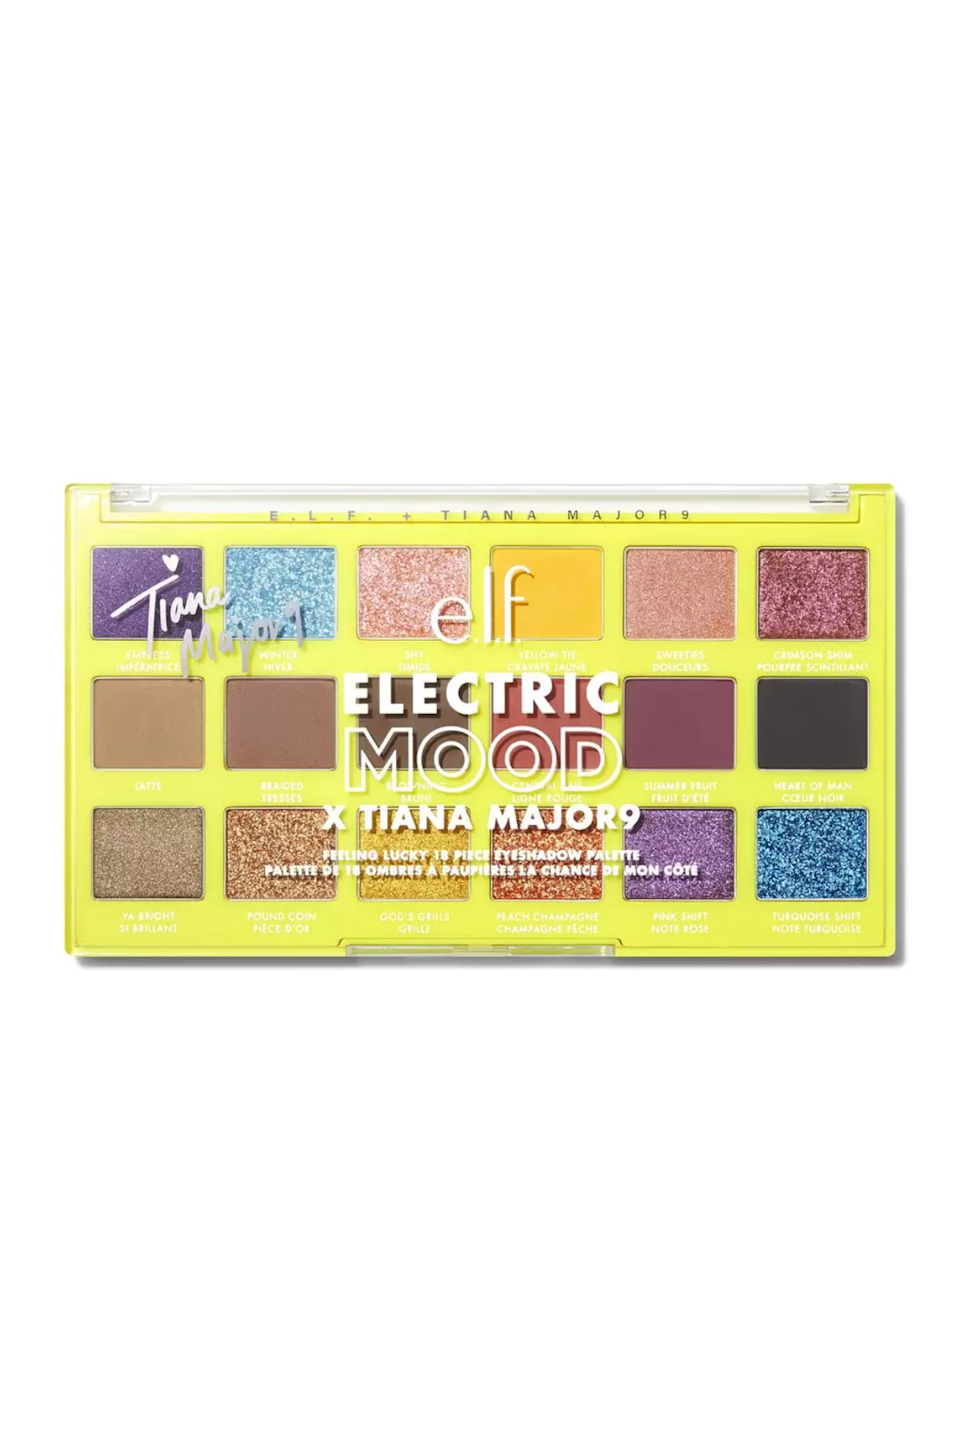 """<p><strong>e.l.f. Cosmetics</strong></p><p>elfcosmetics.com</p><p><strong>$16.00</strong></p><p><a href=""""https://go.redirectingat.com?id=74968X1596630&url=https%3A%2F%2Fwww.elfcosmetics.com%2Felectric-mood-x-tiana-feeling-lucky-eyeshadow-palette%2F82570.html&sref=https%3A%2F%2Fwww.seventeen.com%2Fbeauty%2Fmakeup-skincare%2Fg36866431%2Fbest-elf-makeup-skincare-products%2F"""" rel=""""nofollow noopener"""" target=""""_blank"""" data-ylk=""""slk:Shop Now"""" class=""""link rapid-noclick-resp"""">Shop Now</a></p><p>E.L.F.'s limited-edition Electric Mood collection in collaboration with artists like Tove Lo, Tiana Major9 and Pitizion are based on their respected music genres. Tiana's Feeling Lucky eyeshadow palette pulls inspo from the glimmering sounds in future-facing R&B, soul and hip-hop.</p>"""